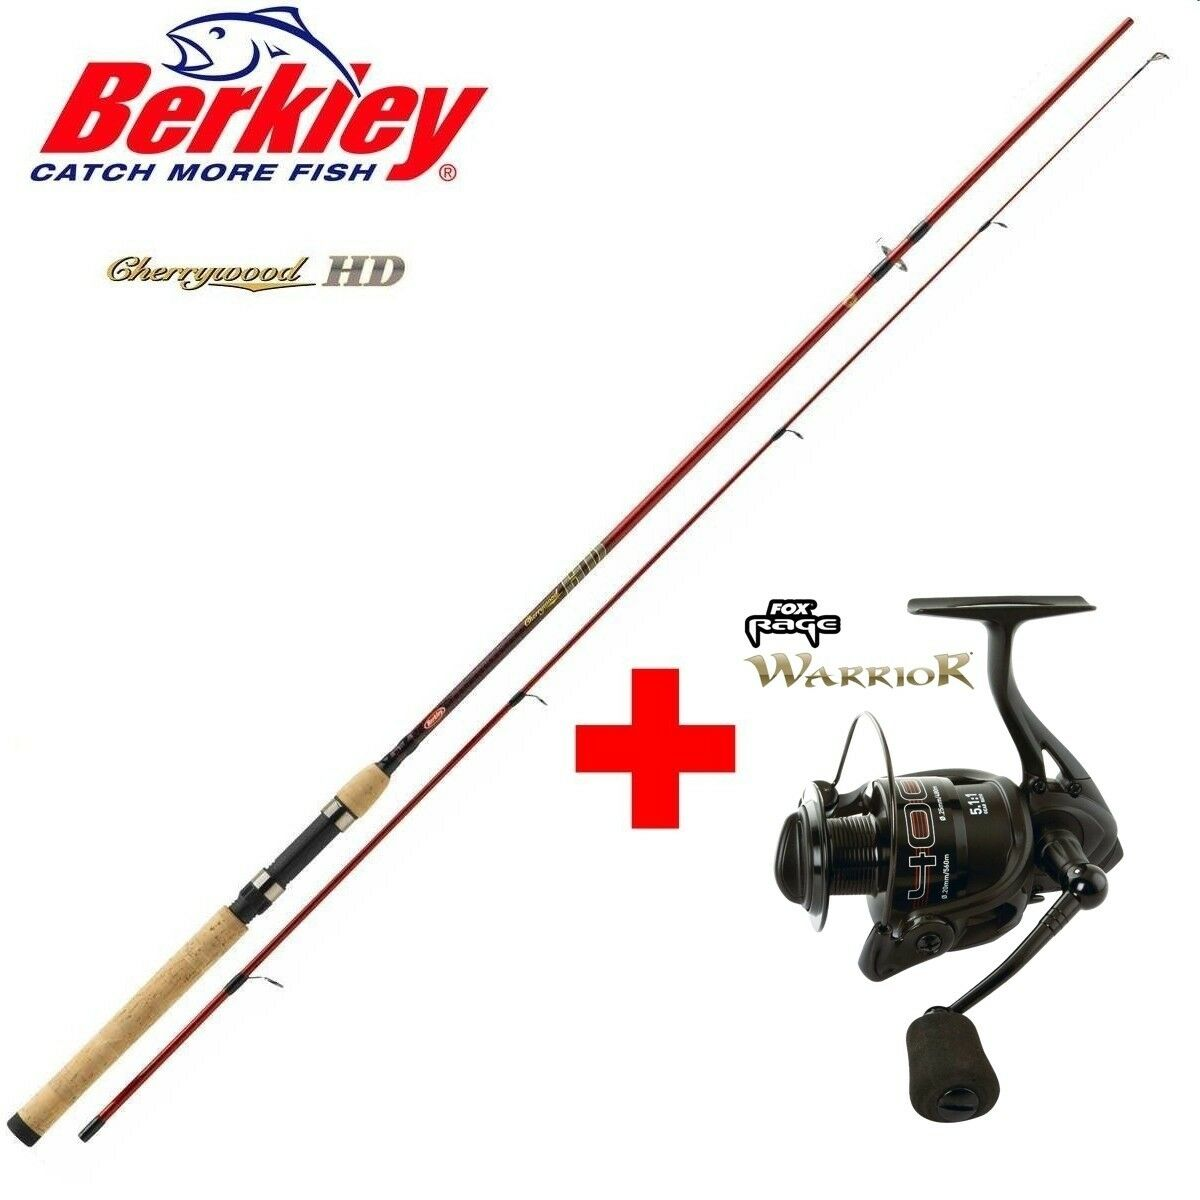 Berkley CHERRYWOOD HD 2,70m + Fox Rage Warrior 4000